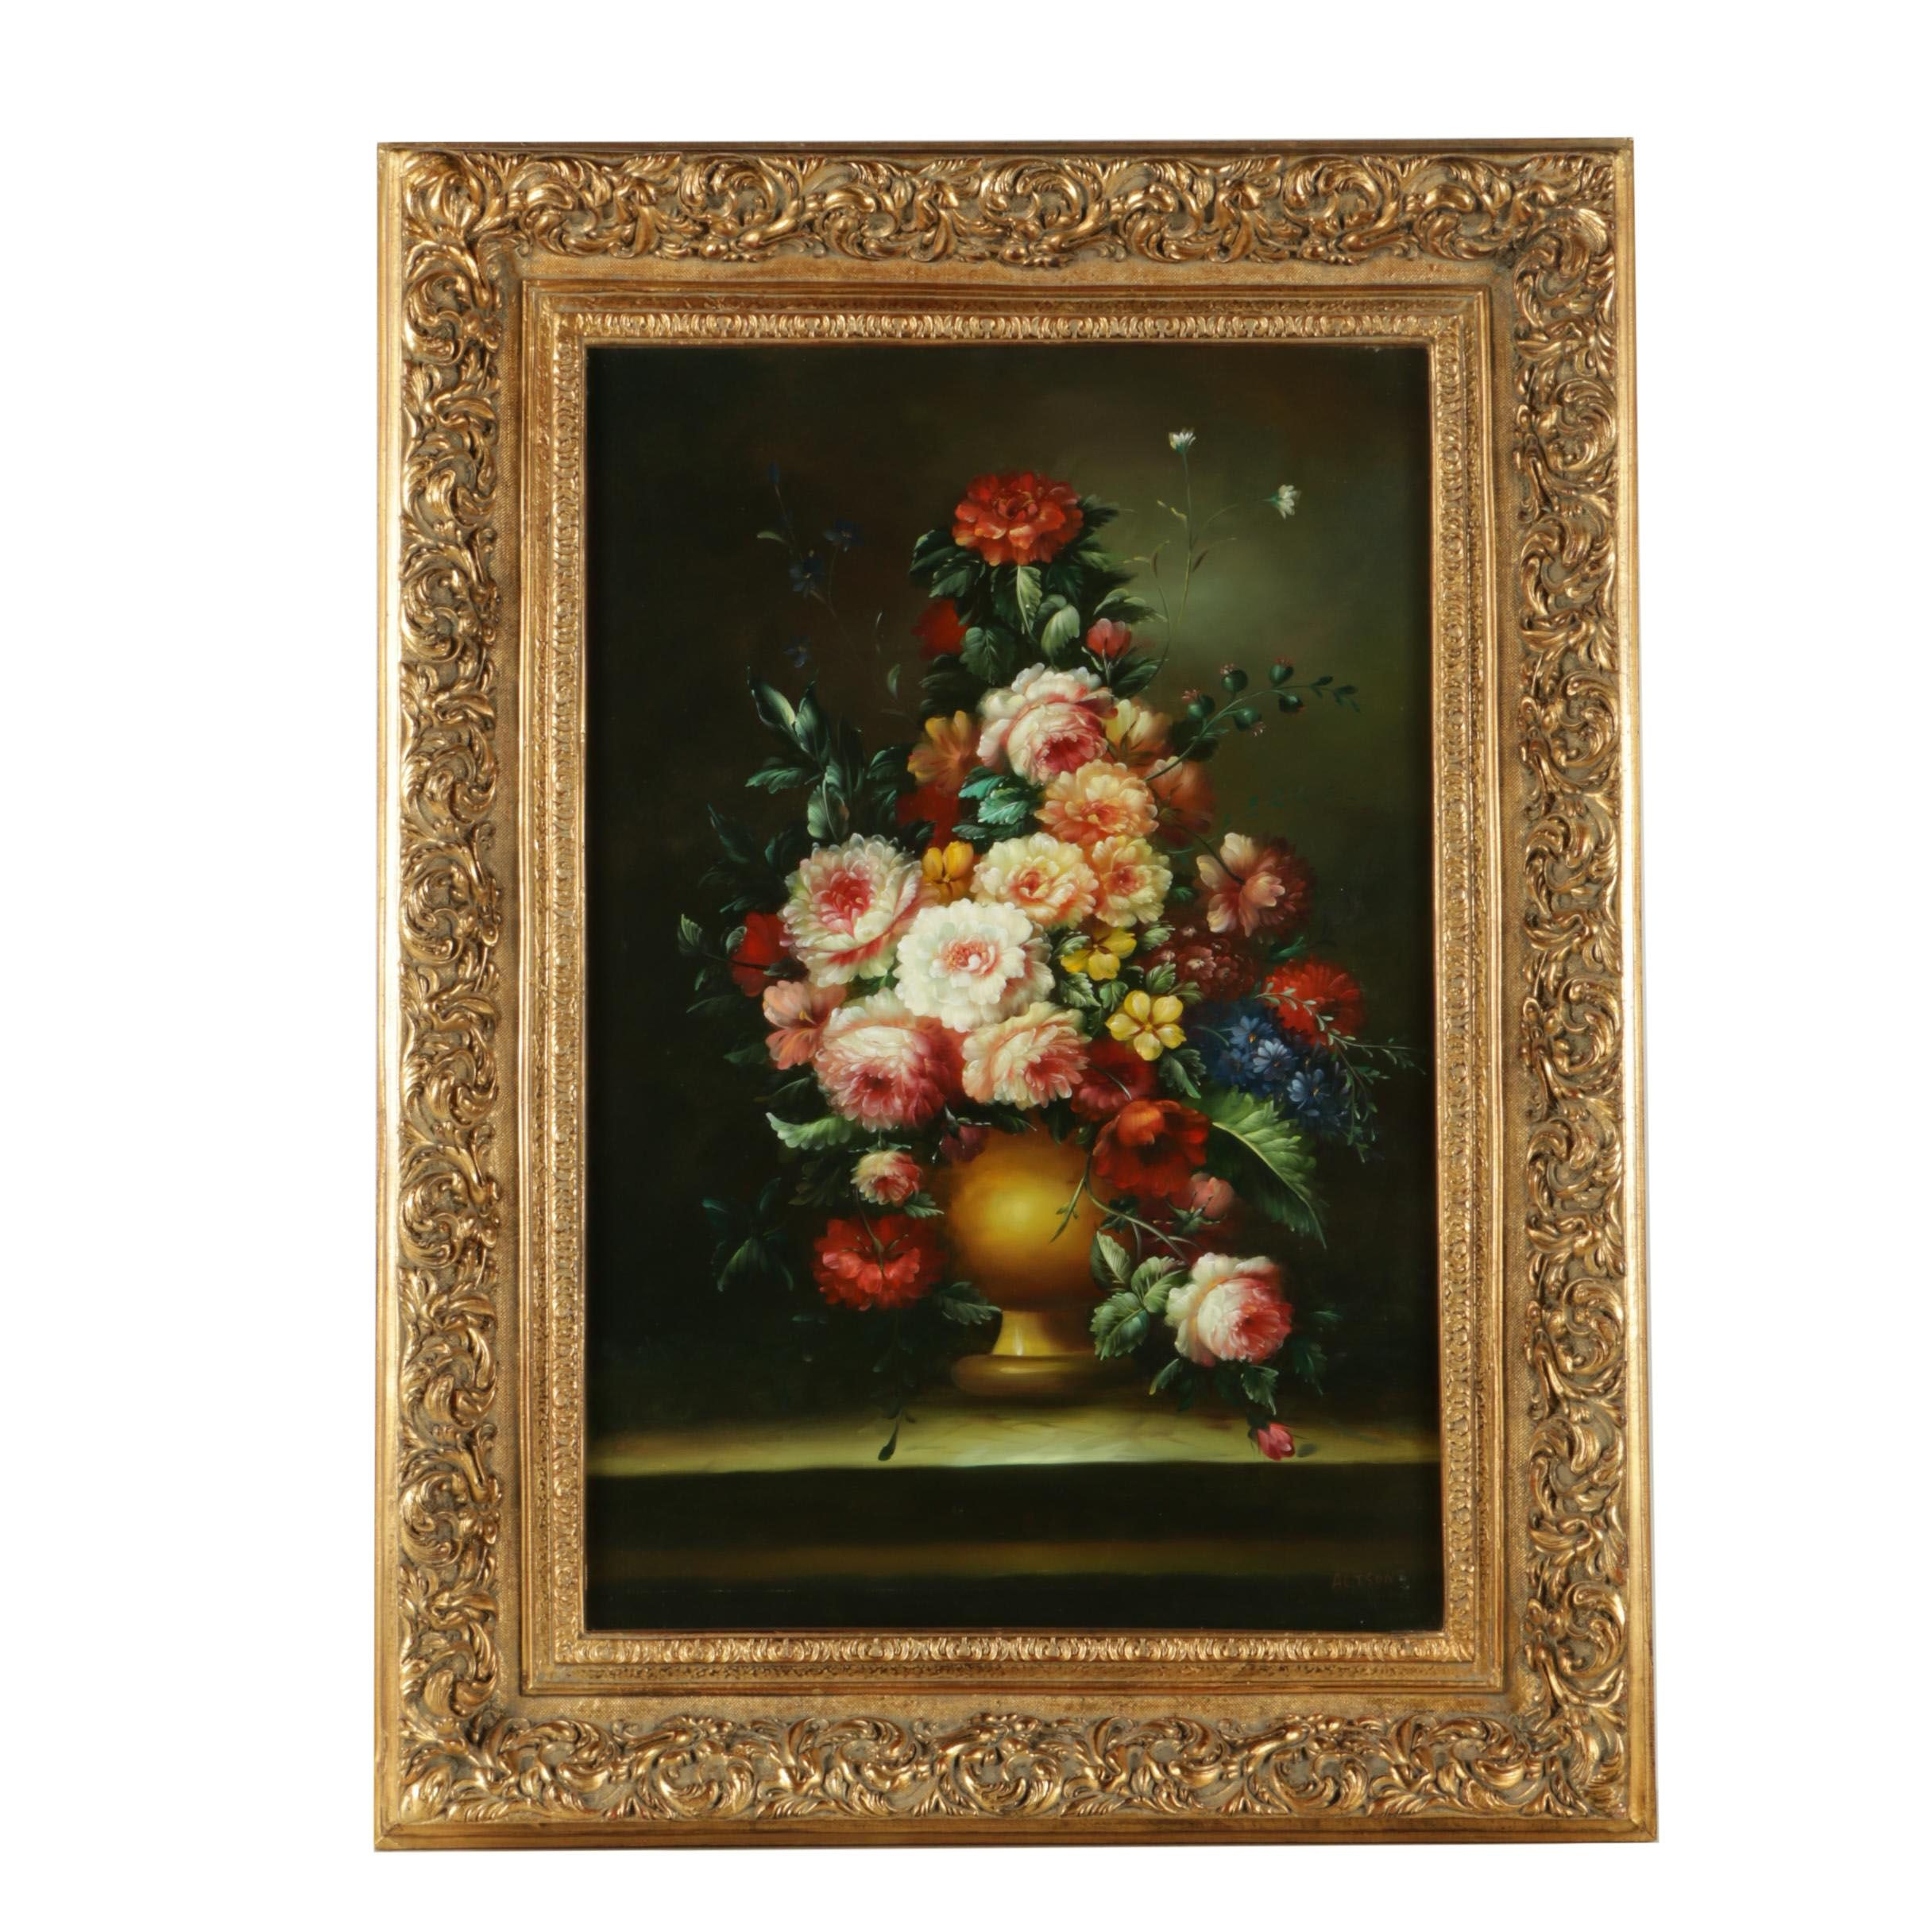 Altson Oil Painting on Canvas of Still Life with Floral Bouquet